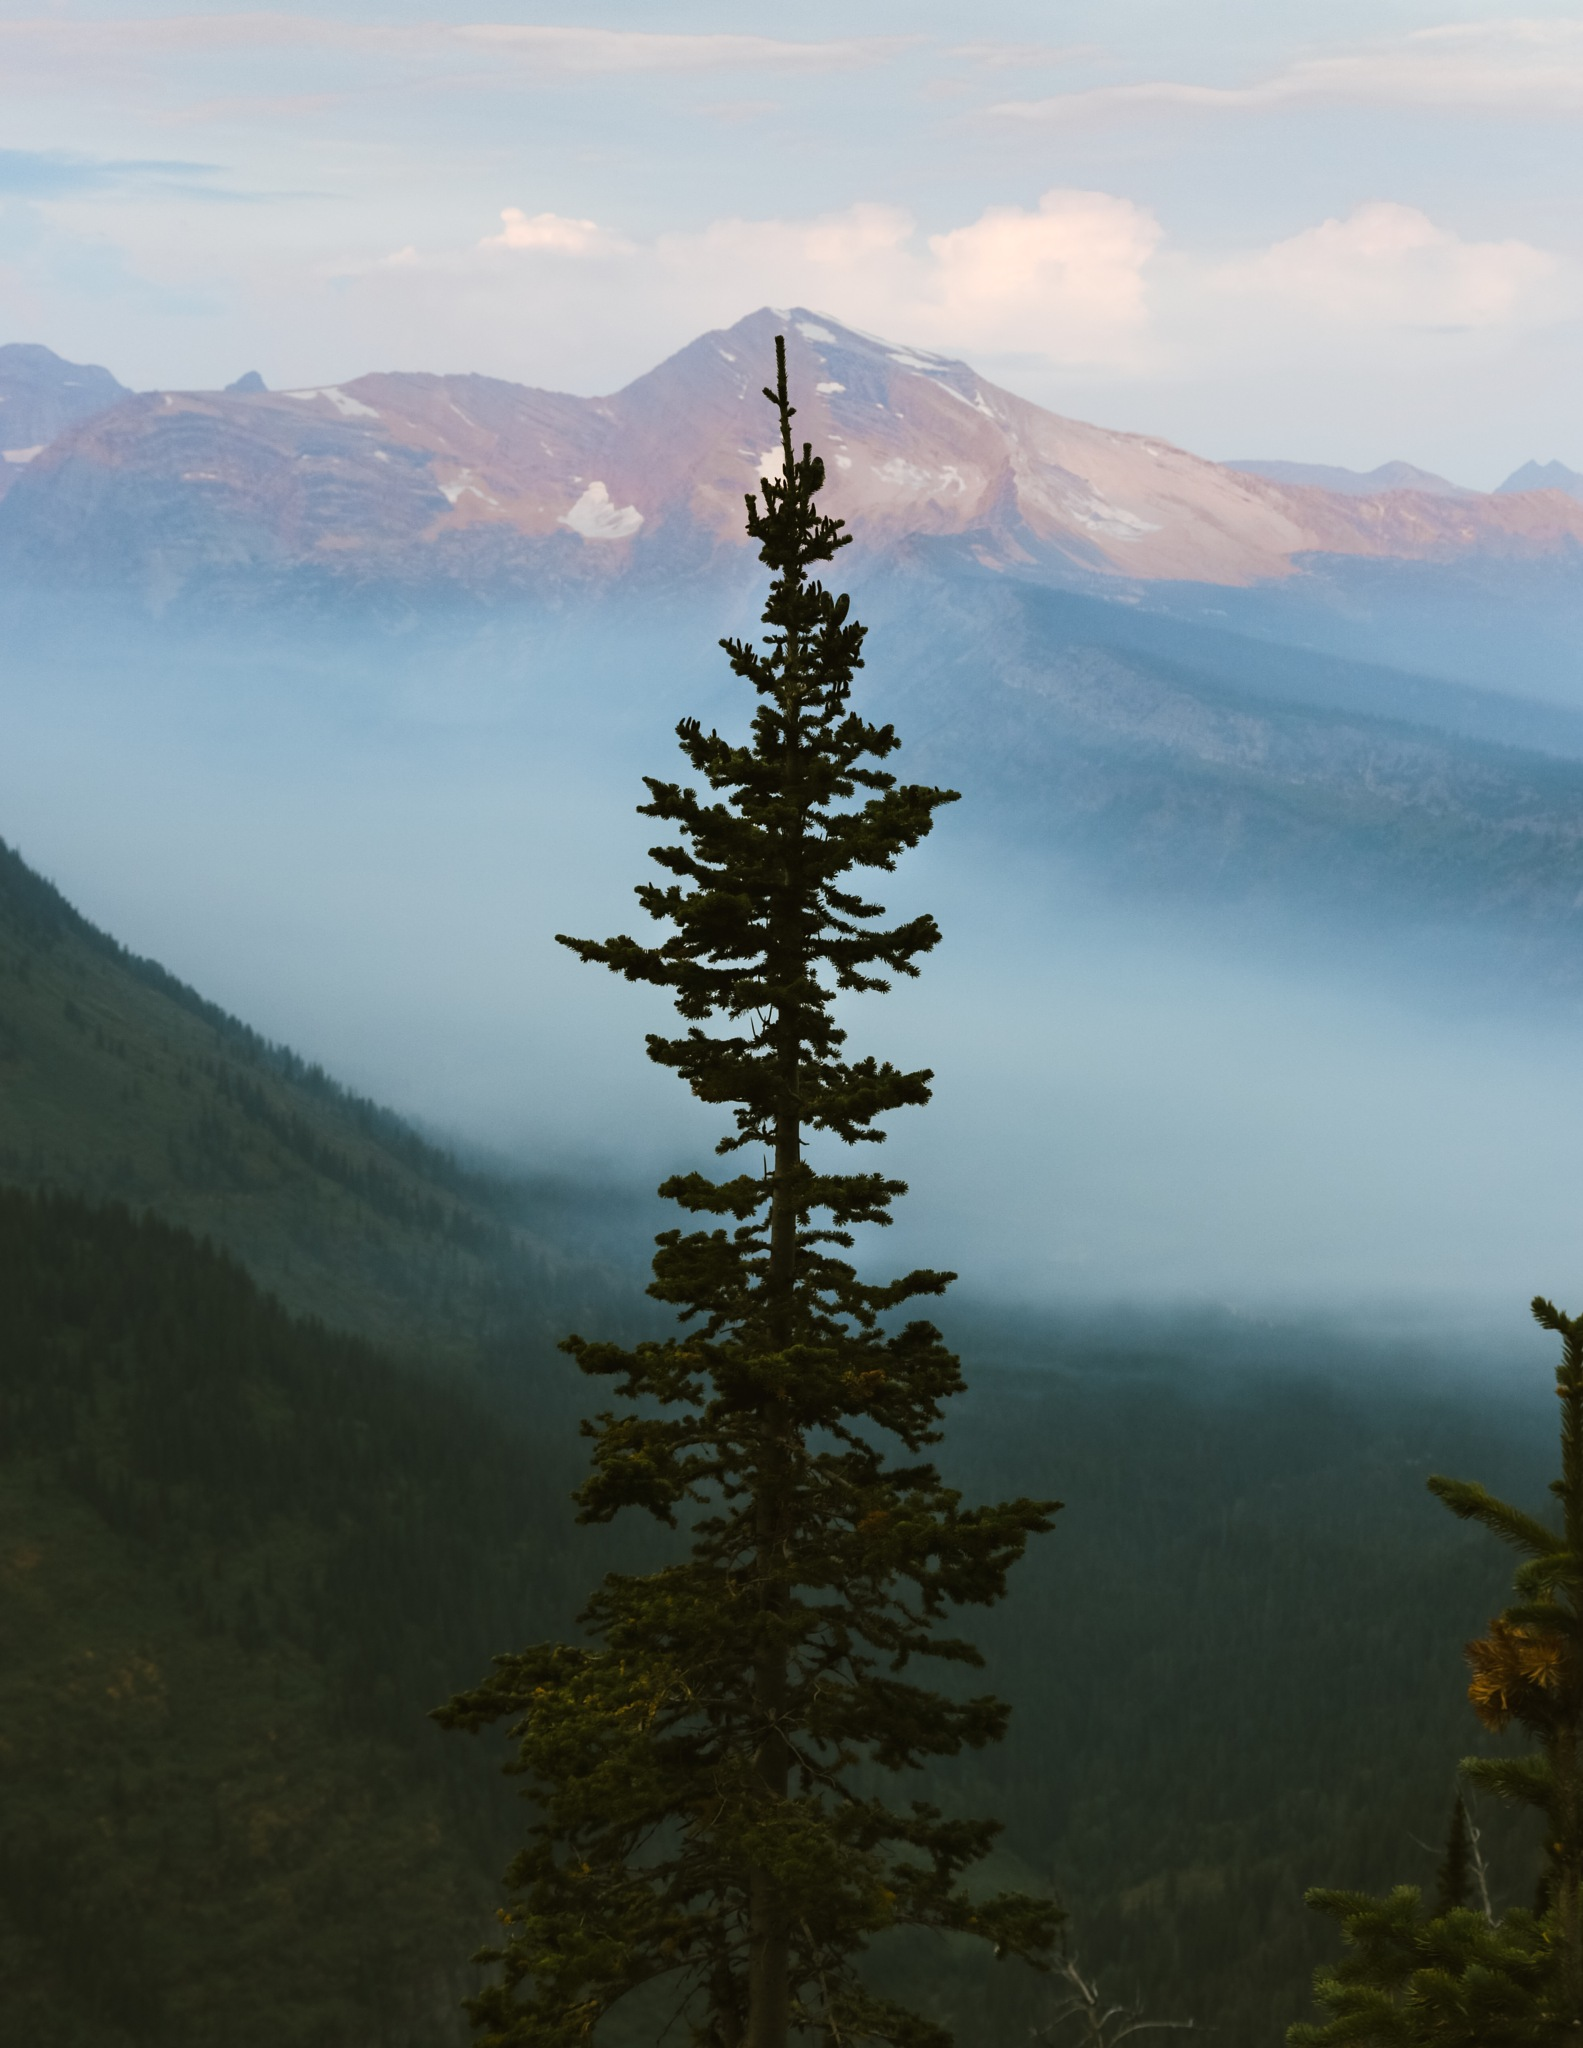 Morning in the Mountains by josiahtbonner